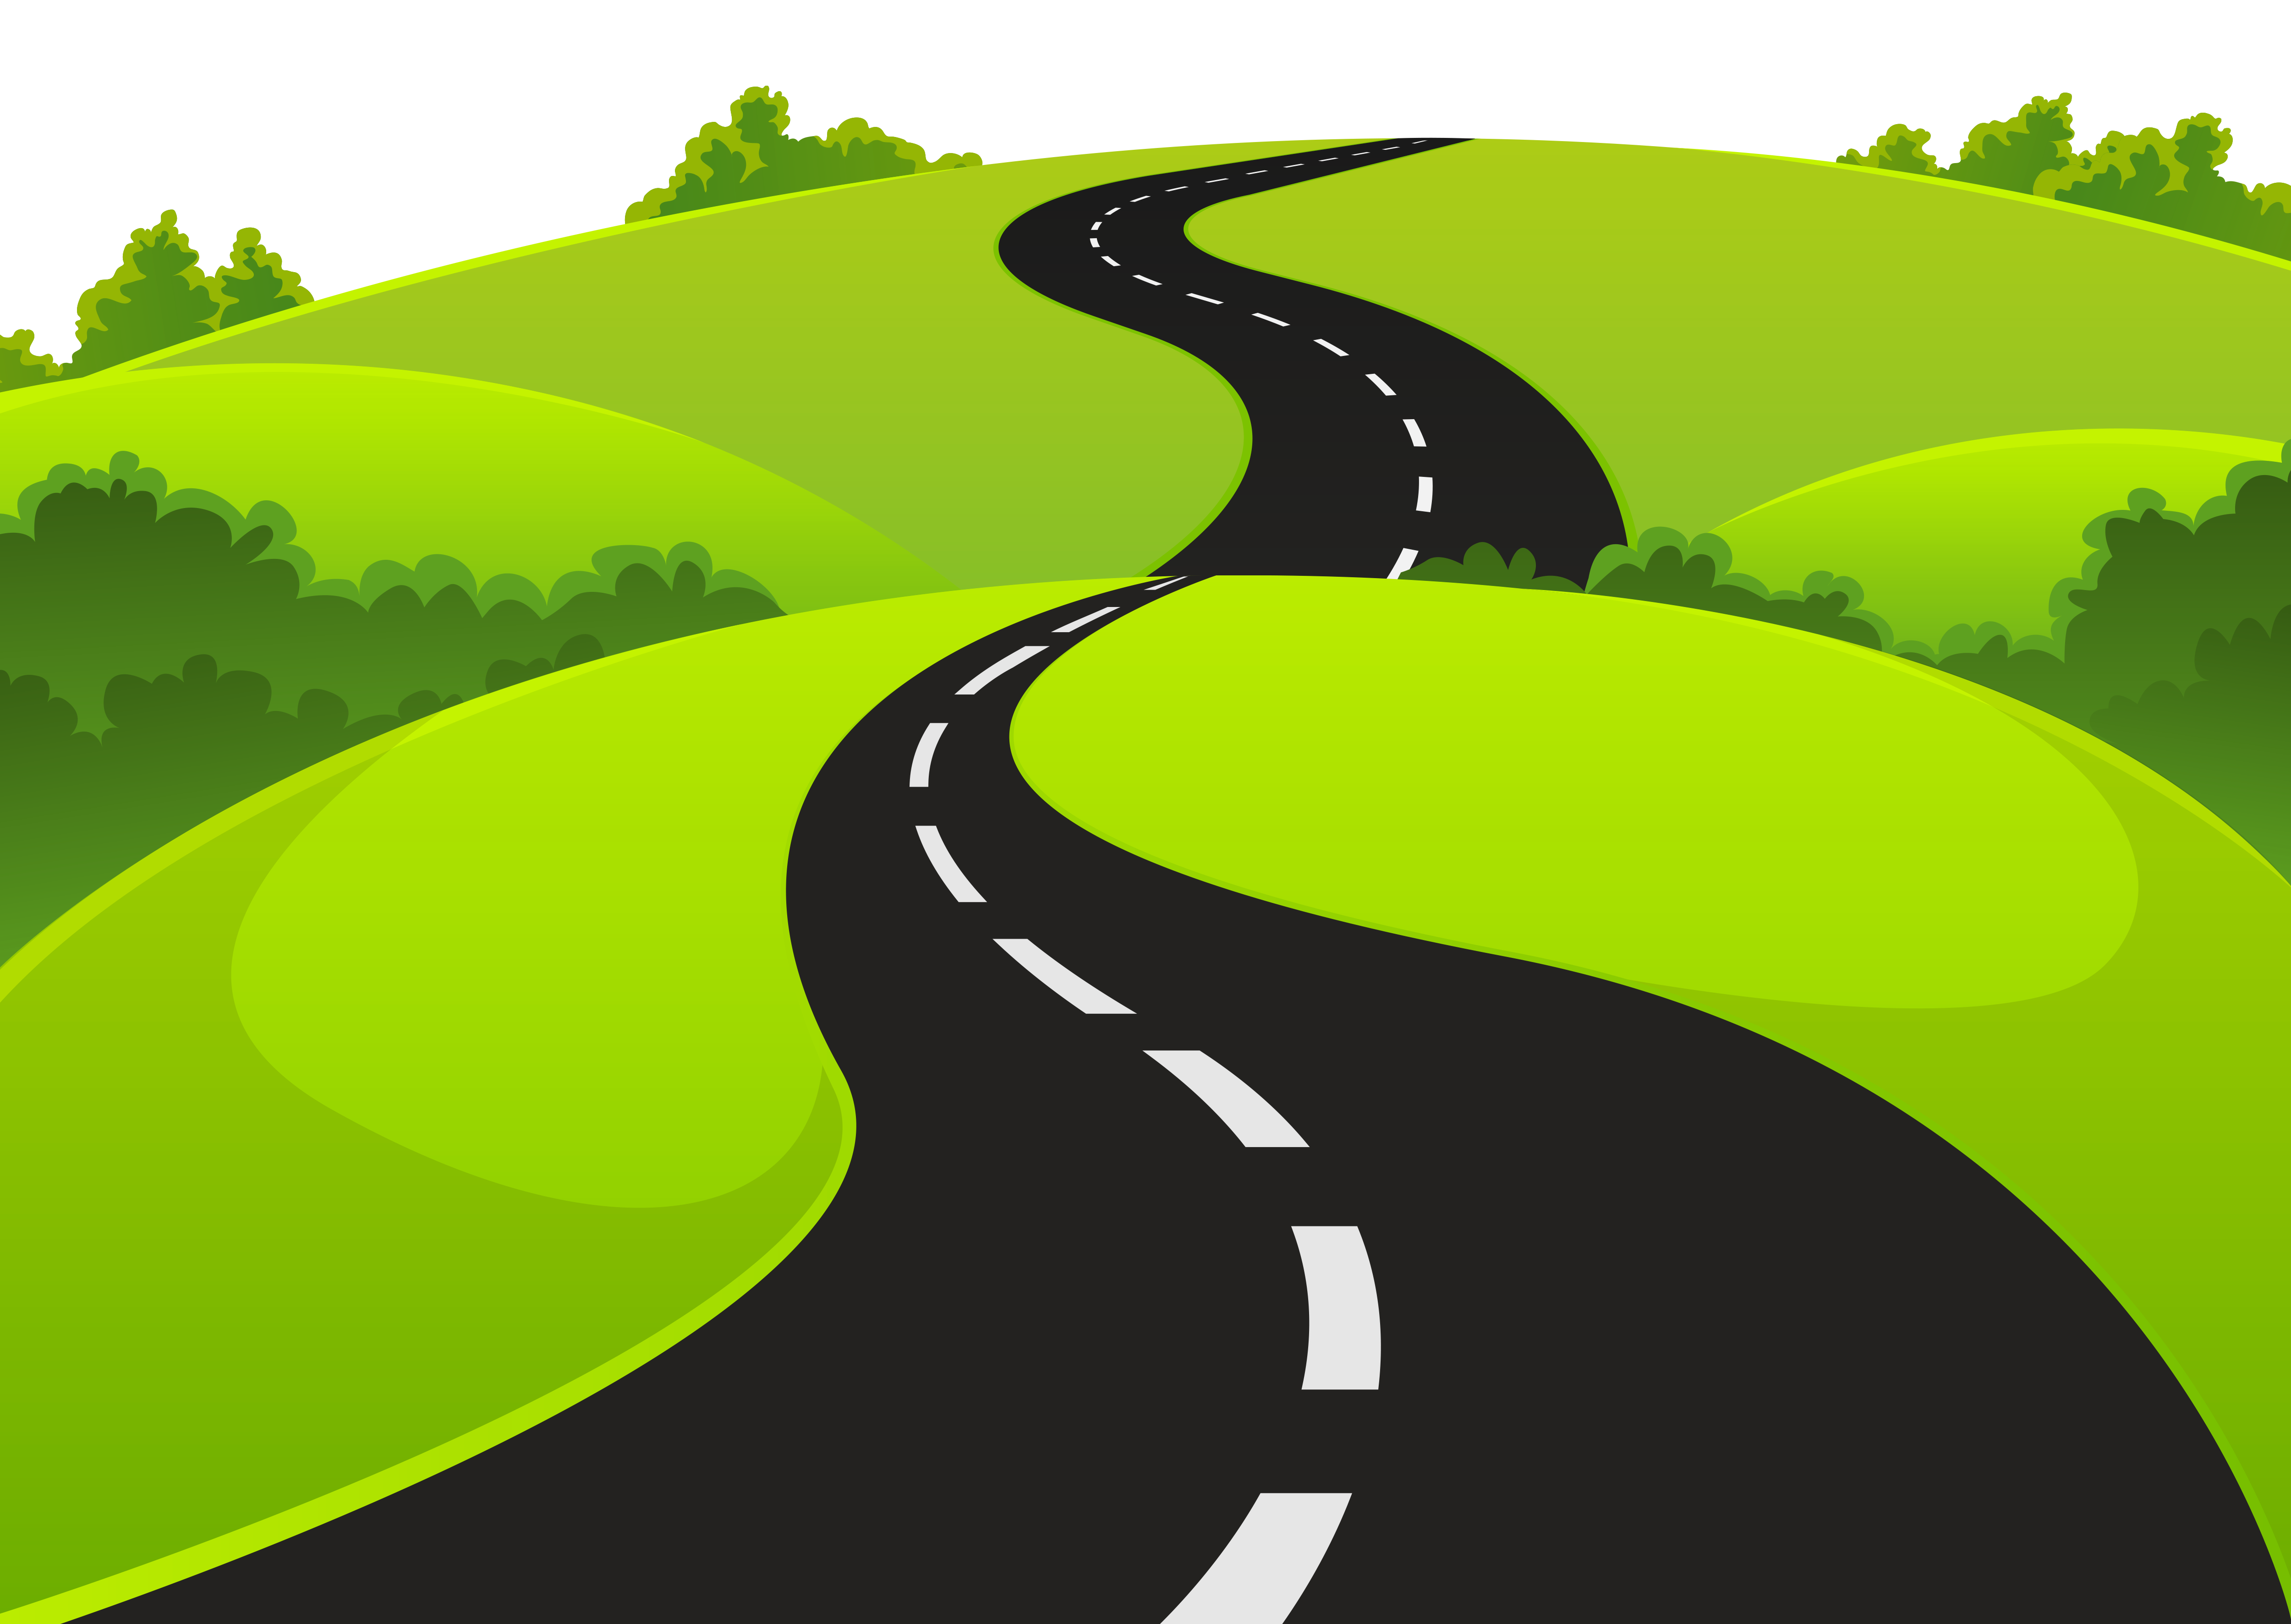 Road clipart #2, Download drawings